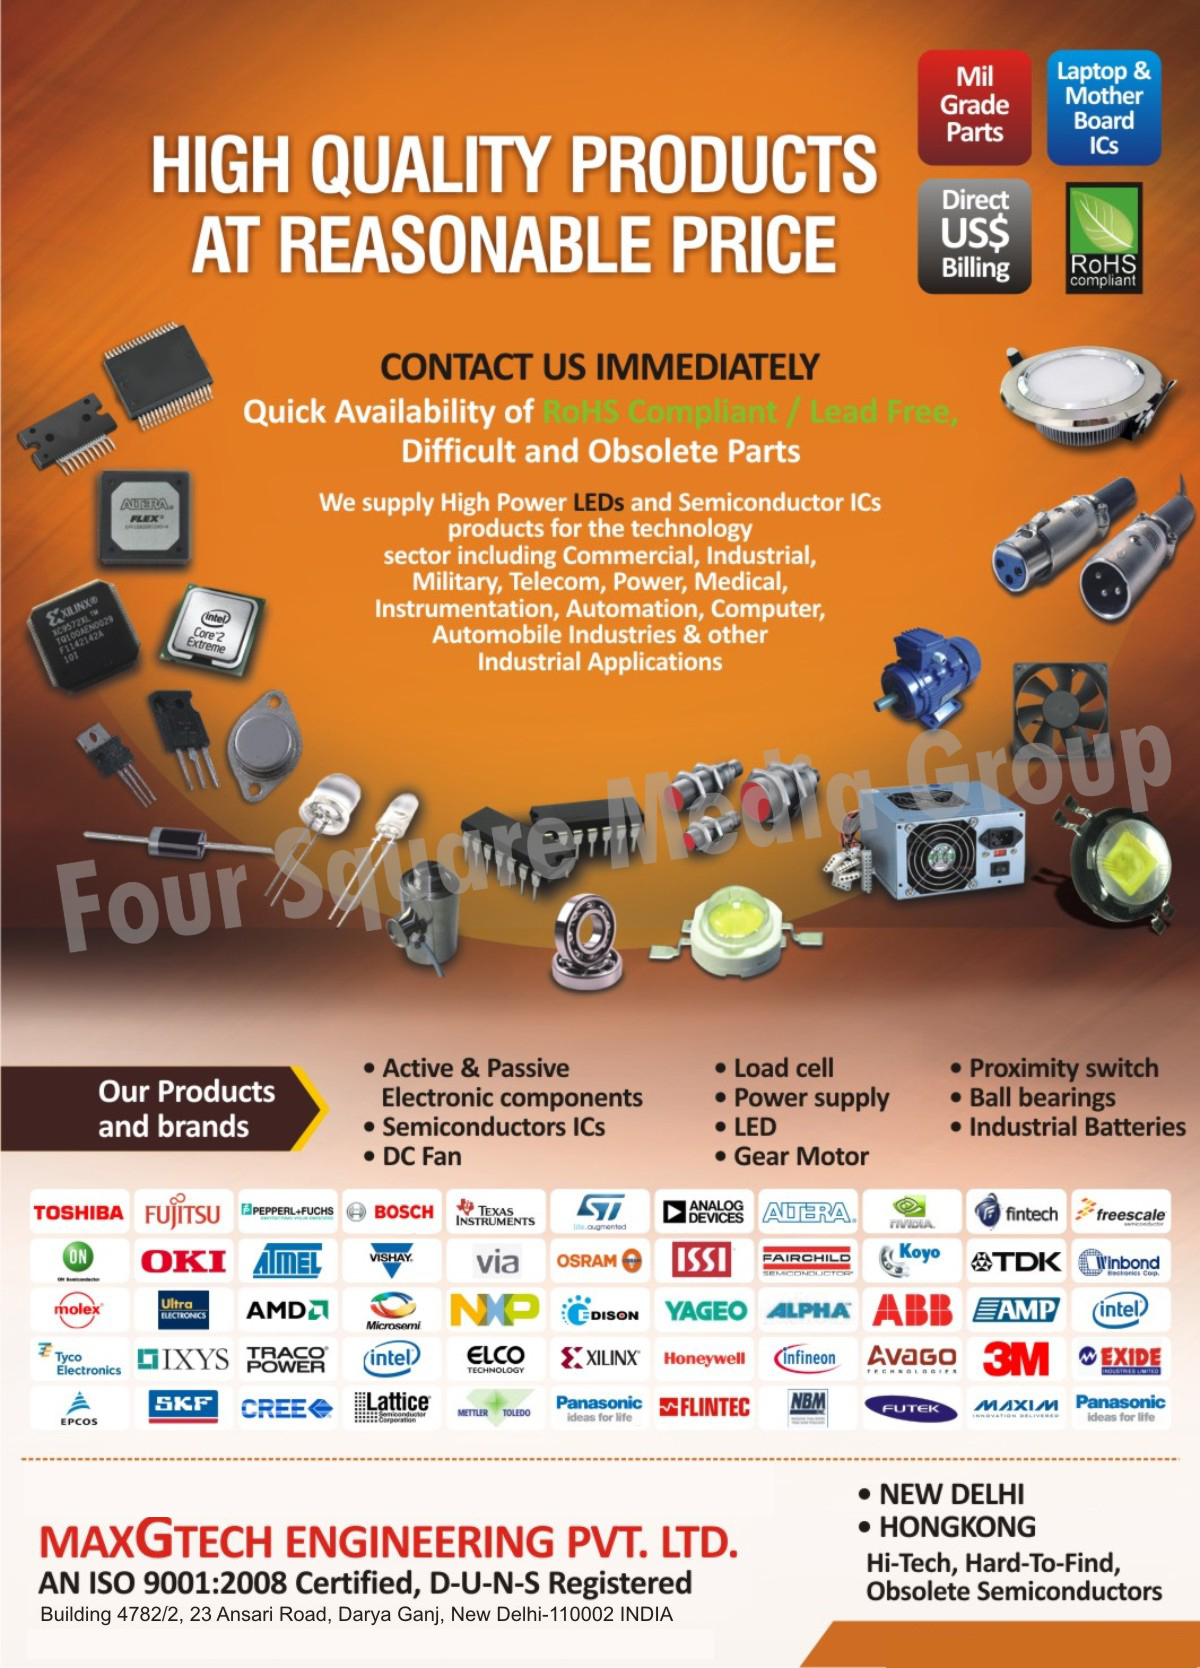 Electronic Components, Active Electronic Components, Passive Electronic Components, High Power LEDs, Semiconductor Integrated Circuits, DC Fans, Load Cells, Power Supply, LED, Gear Motors, Proximity Switch, Ball Bearings, Industrial Battery, Led Bulbs, Led Driver